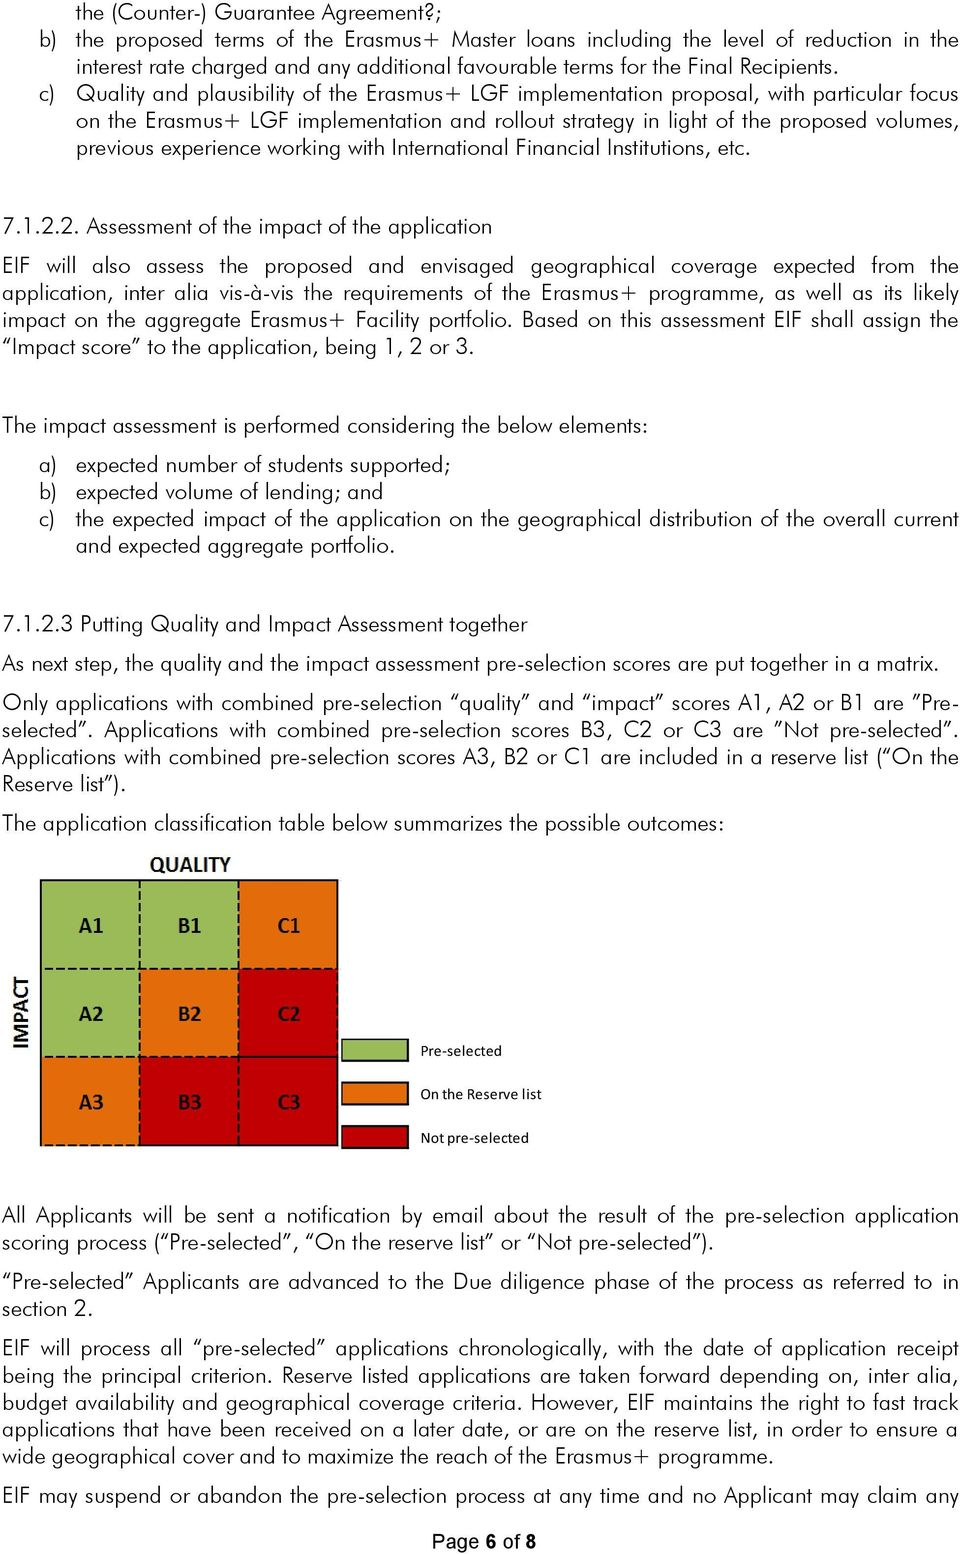 c) Quality and plausibility of the Erasmus+ LGF implementation proposal, with particular focus on the Erasmus+ LGF implementation and rollout strategy in light of the proposed volumes, previous